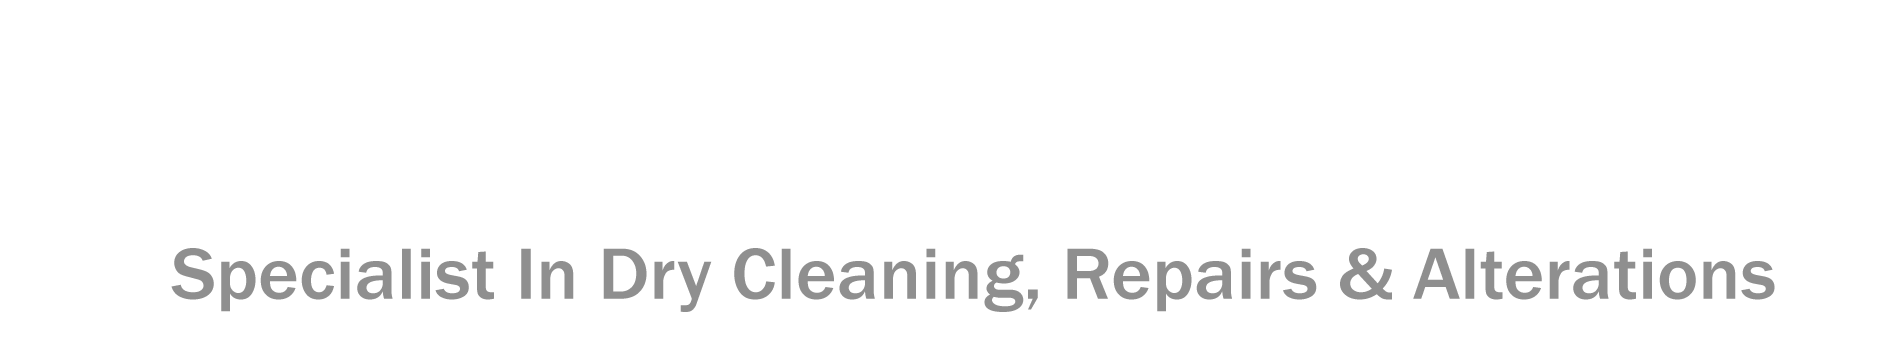 Concord Dry Cleaners